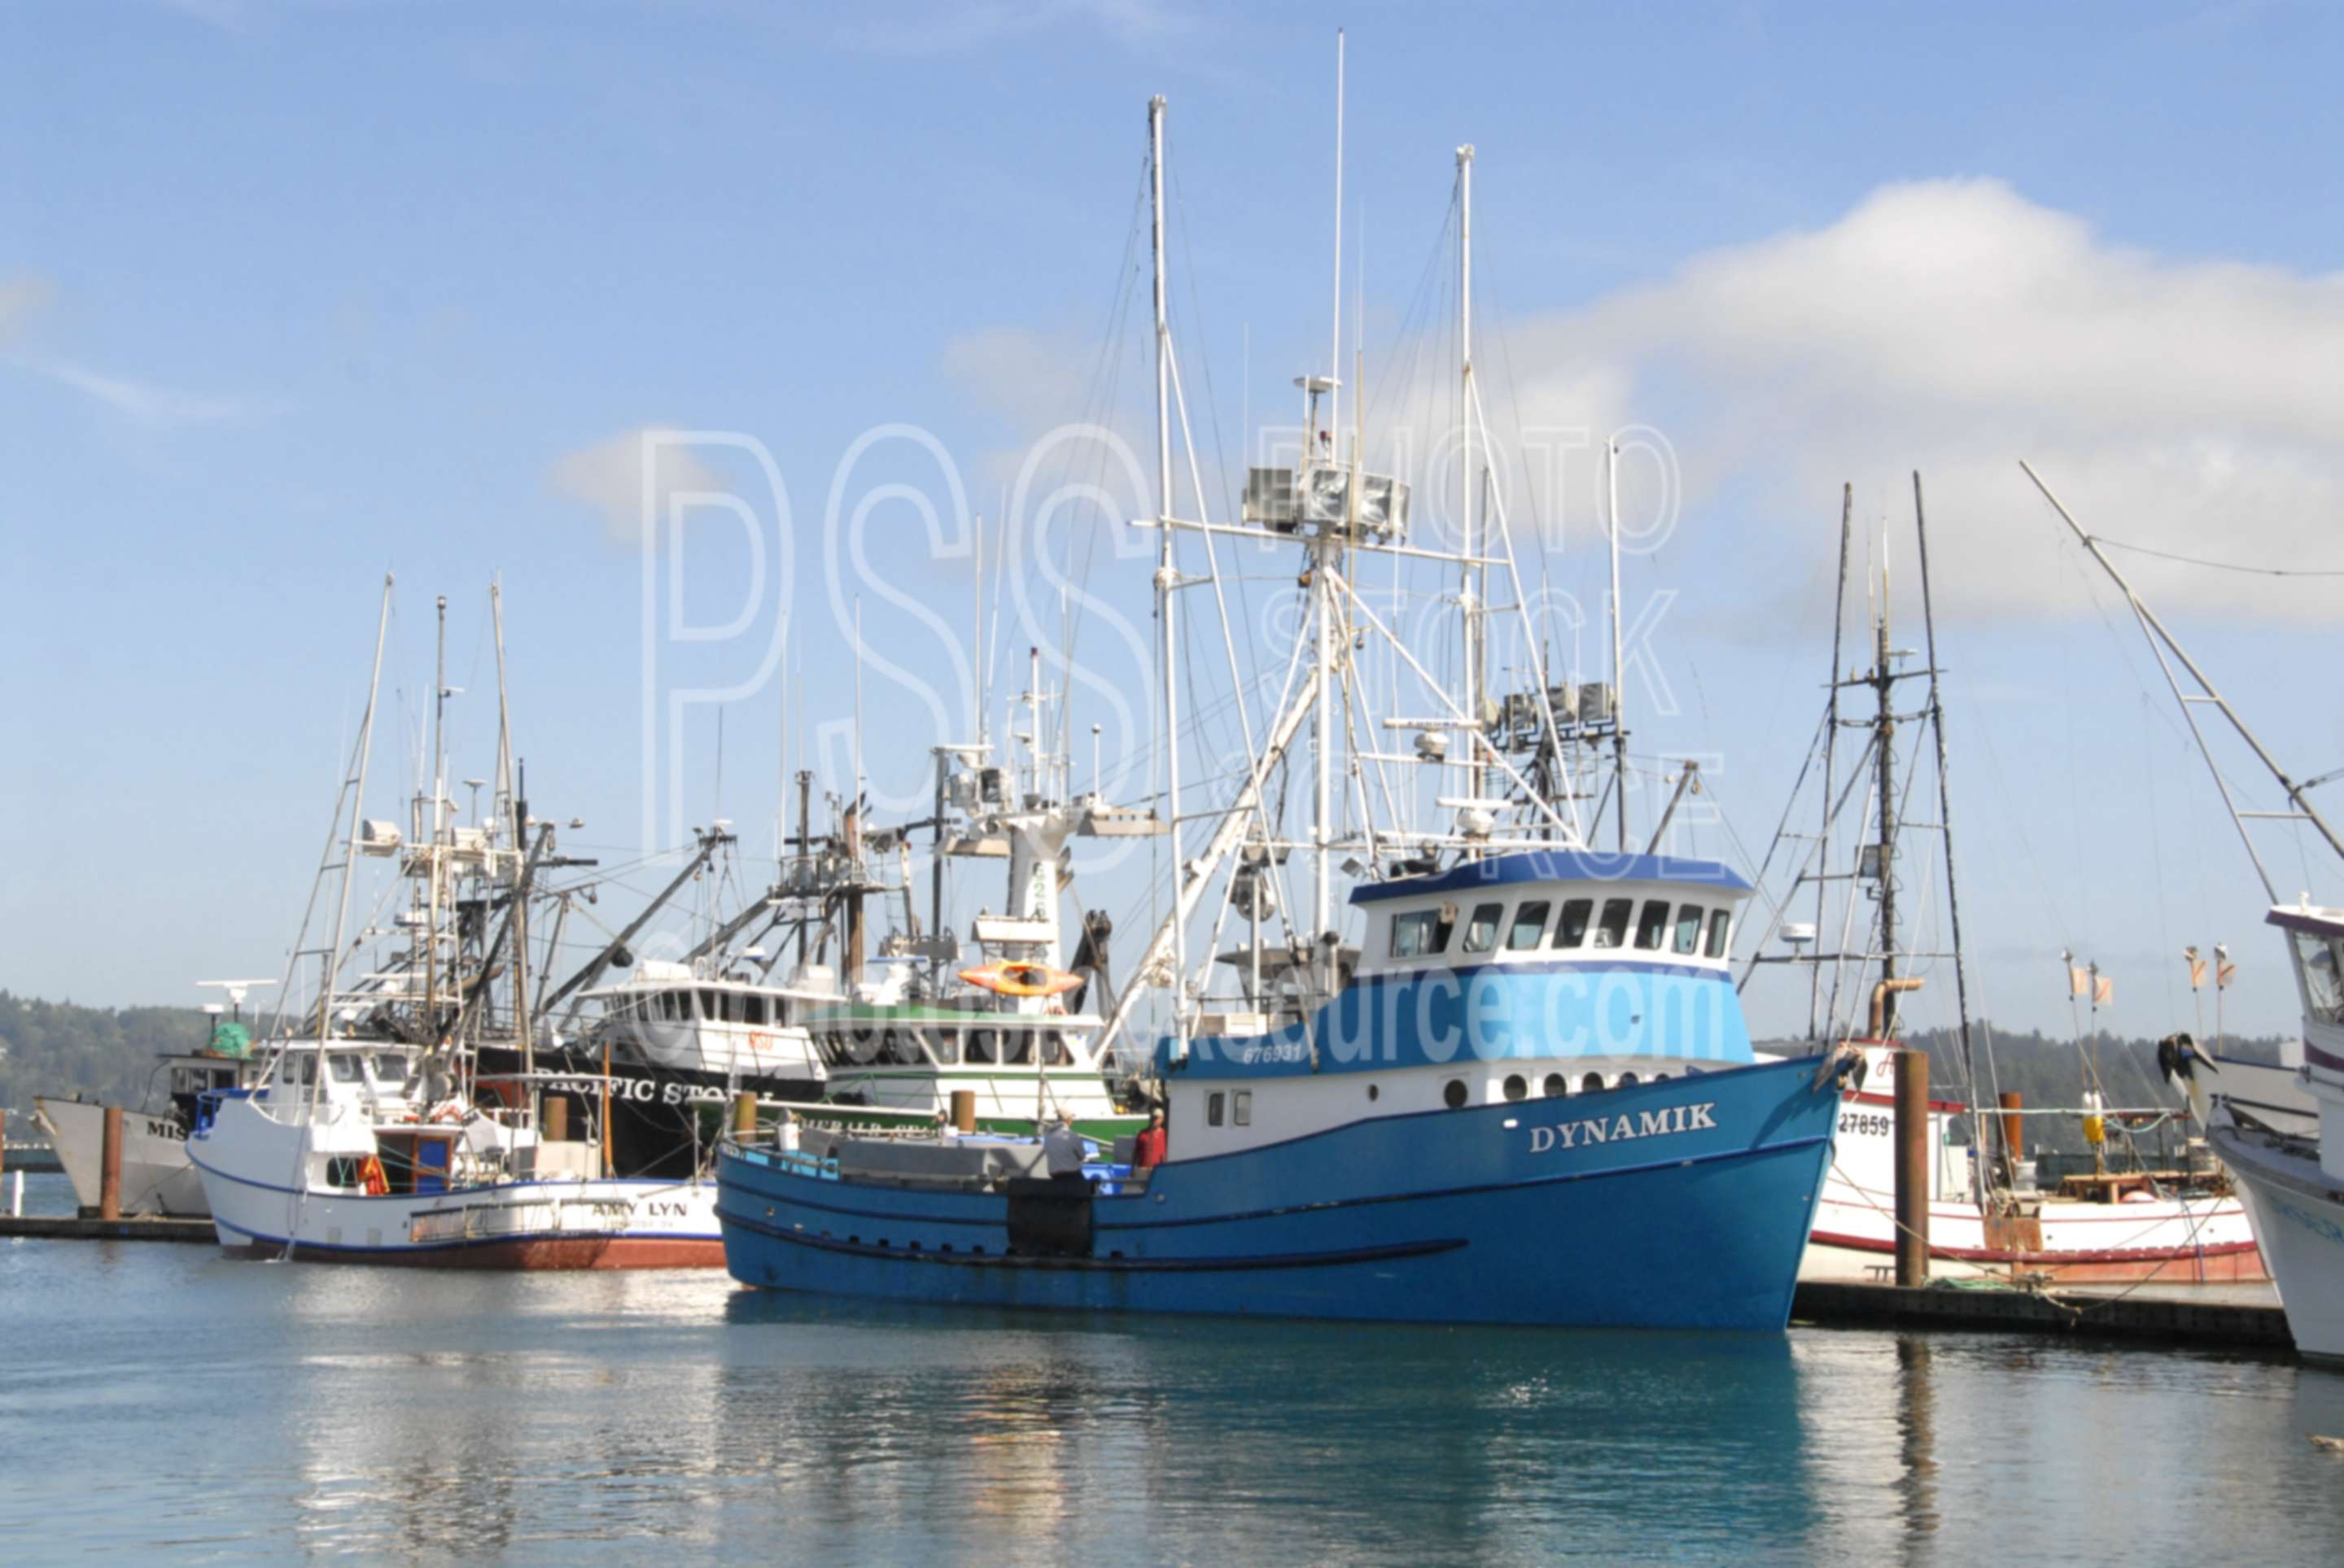 Photo of dynamik fishing boat by photo stock source for Newport harbor fishing